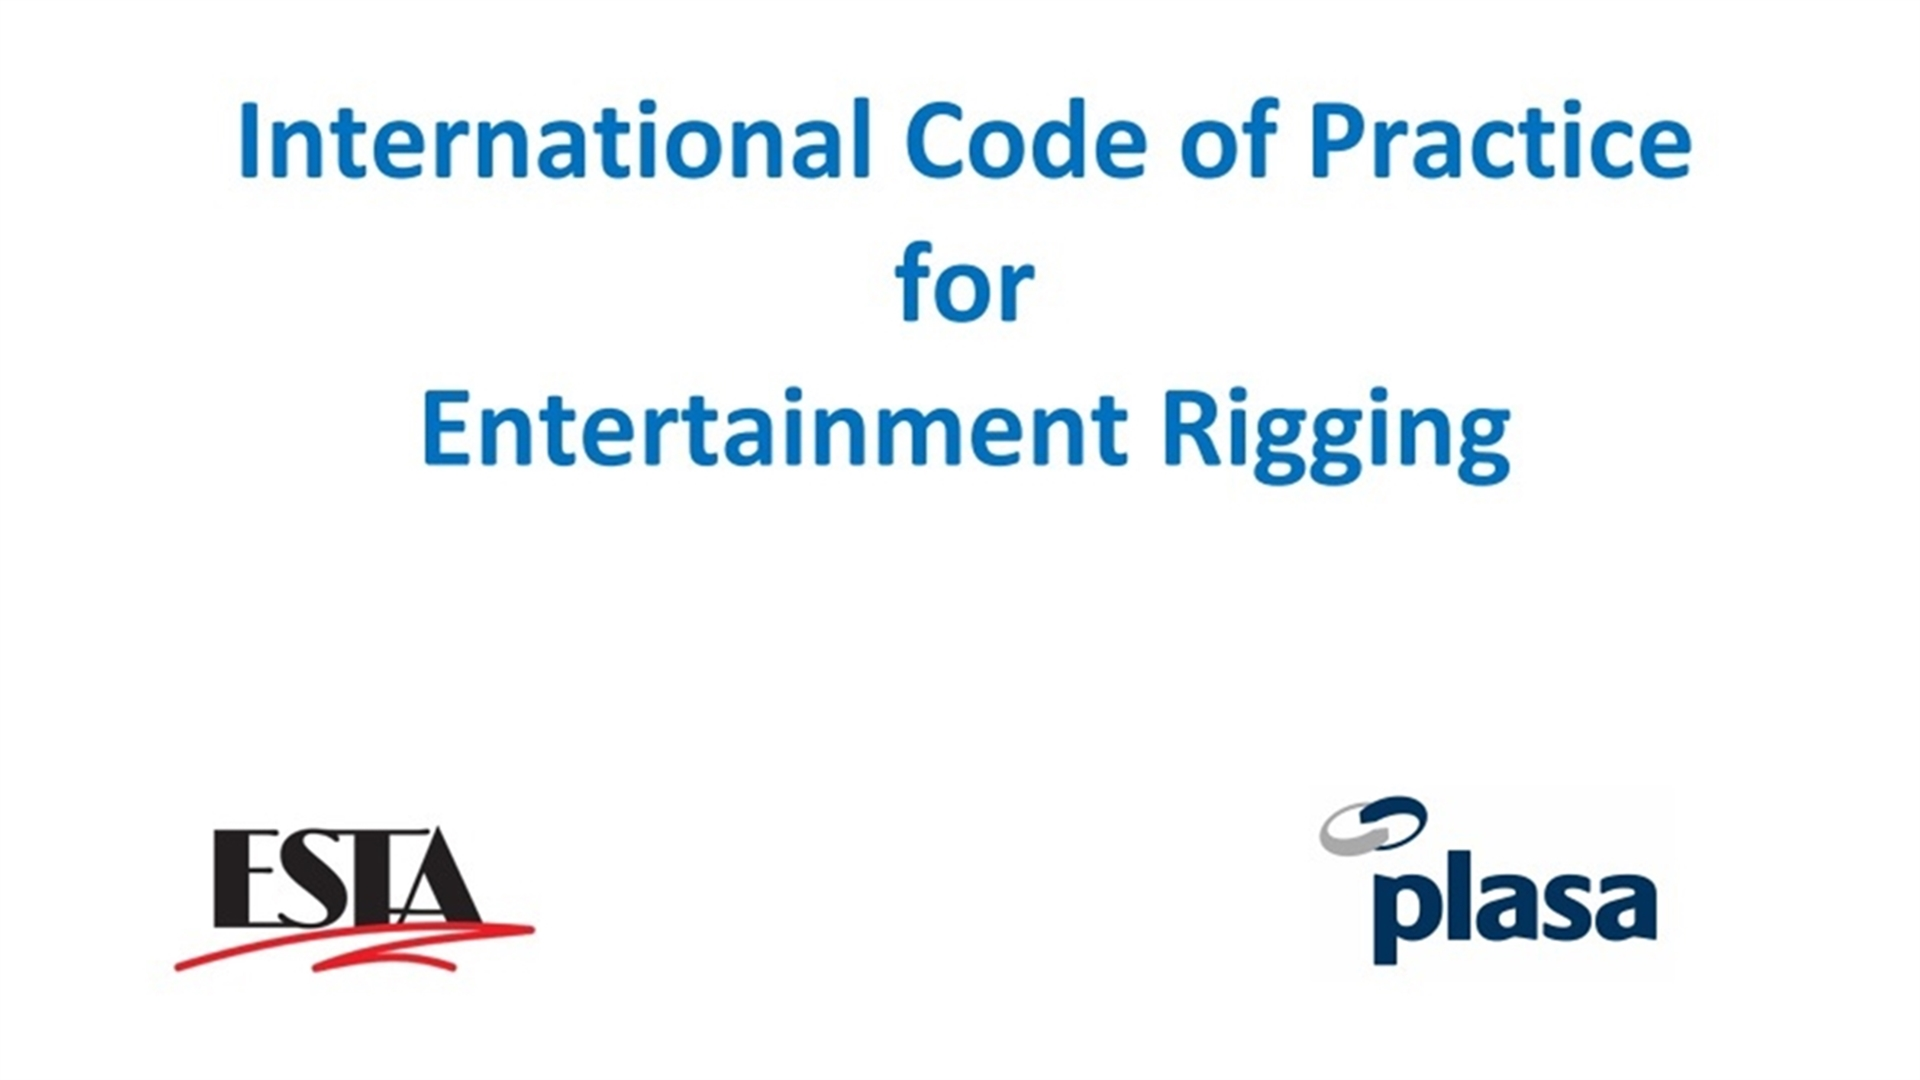 Code of practice launched world esta and plasa have released the international code of practice for entertainment rigging icoper as a free download 1betcityfo Image collections